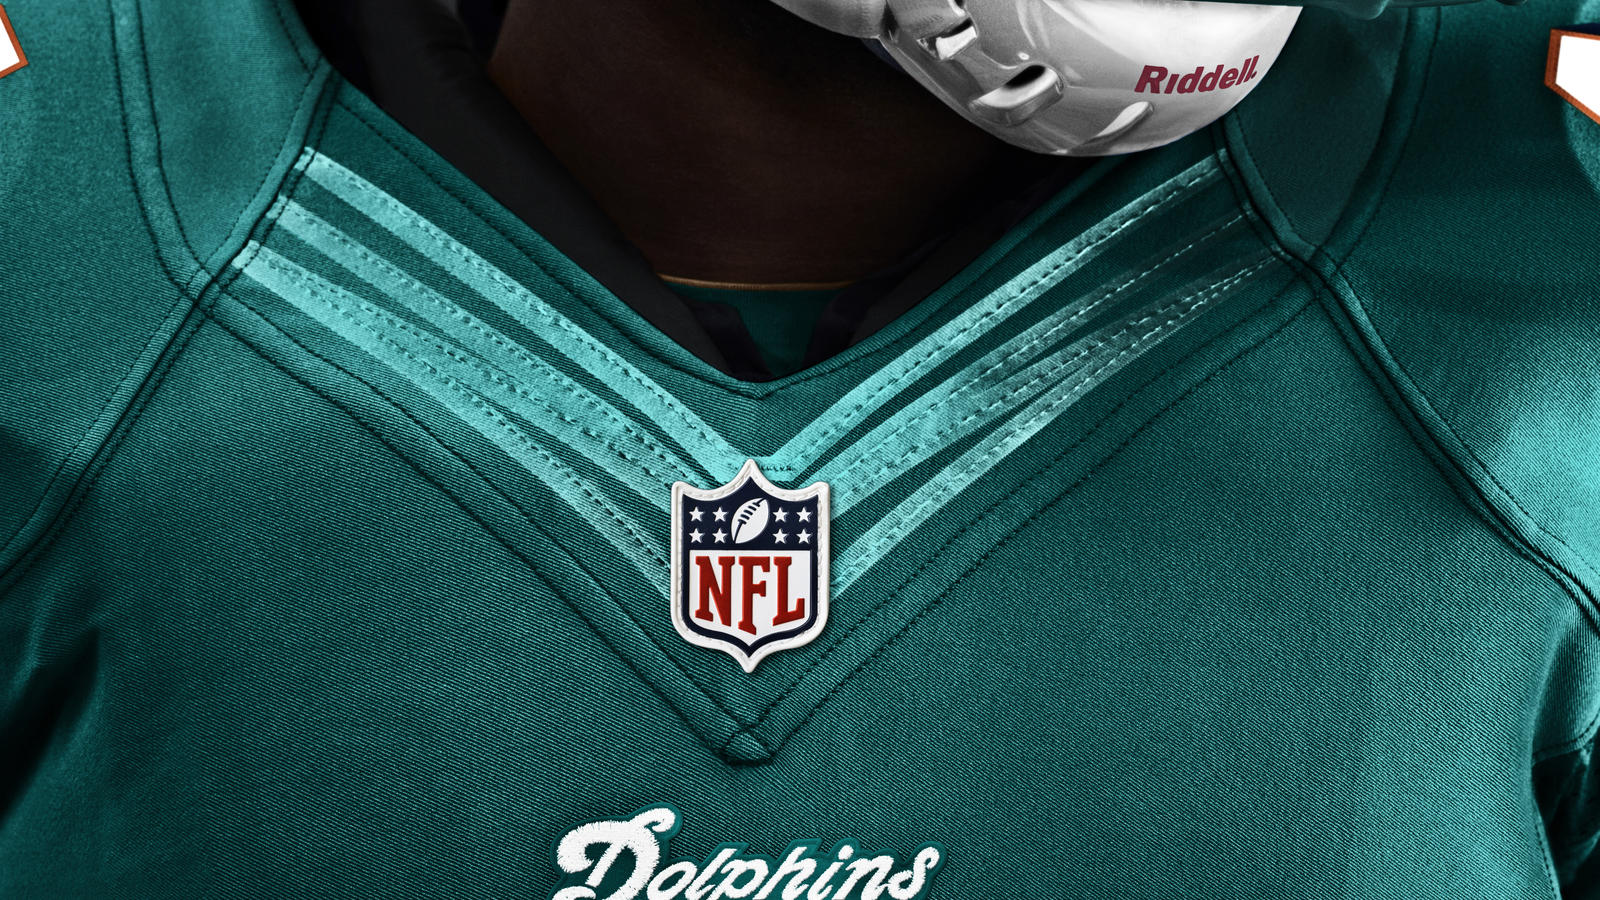 SU12_AT_NFL_UNIFORM_FLYWIRE_DOLPHINS